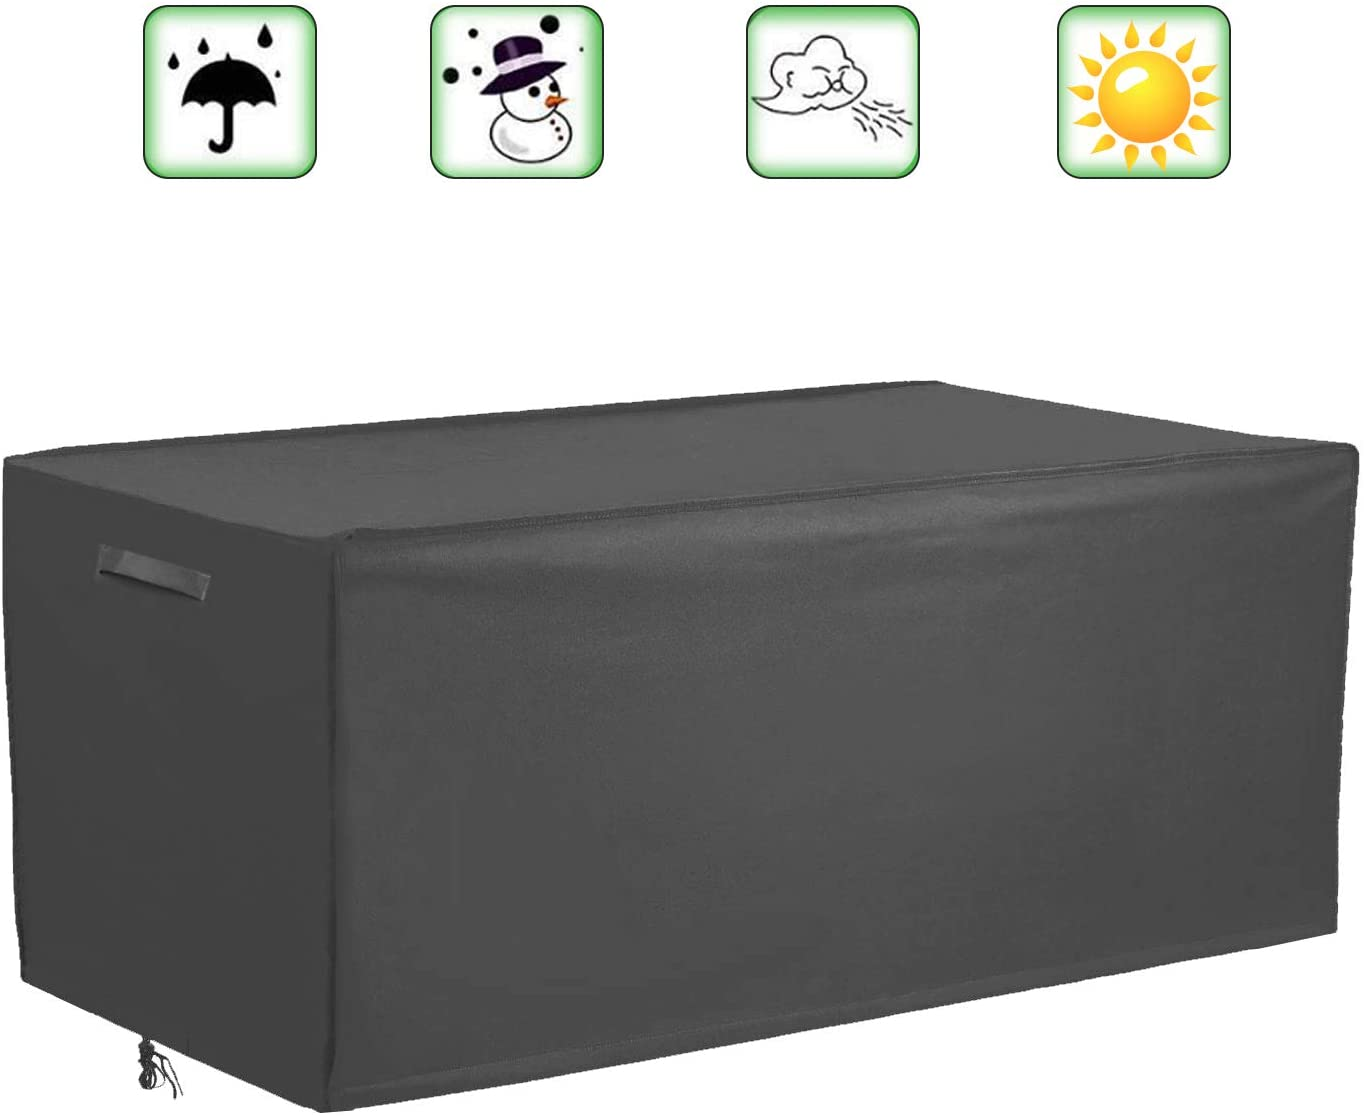 Patio Deck Box Cover Outdoor Cushions Box Cover, Waterproof Outdoor Storage Box Protector, Rectangular Coffee Table Cover 51.5